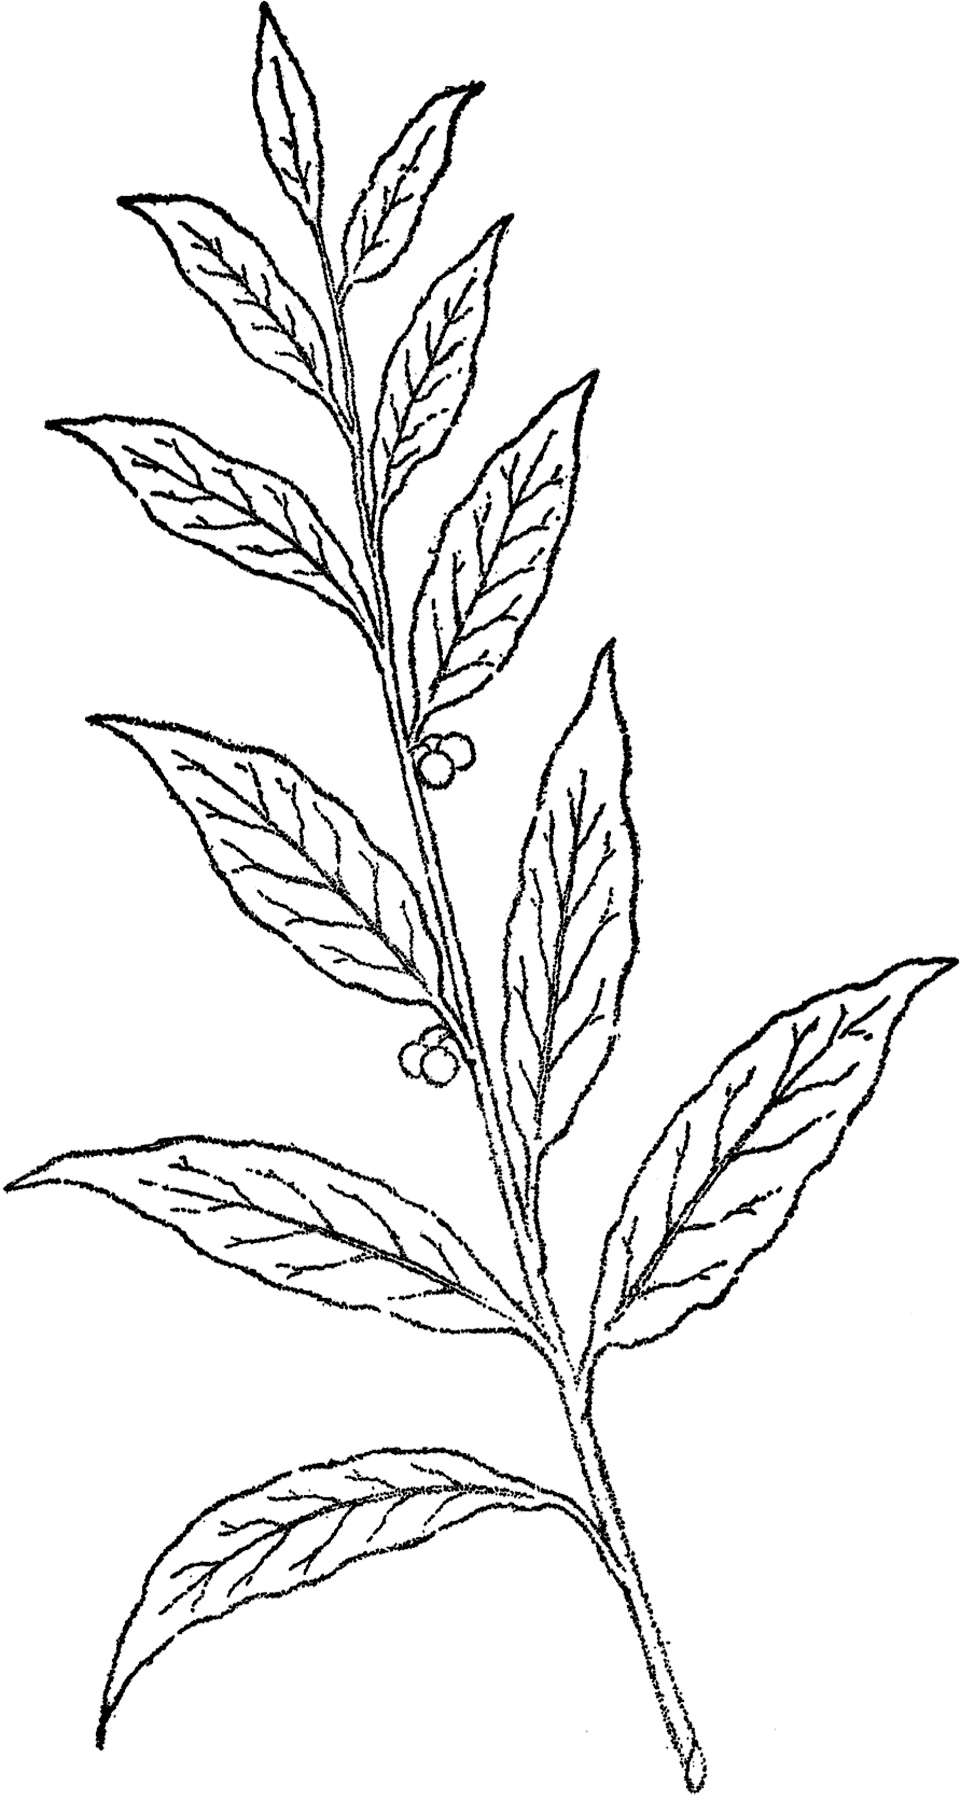 Line Drawing Photo : Pretty berry branch line art the graphics fairy